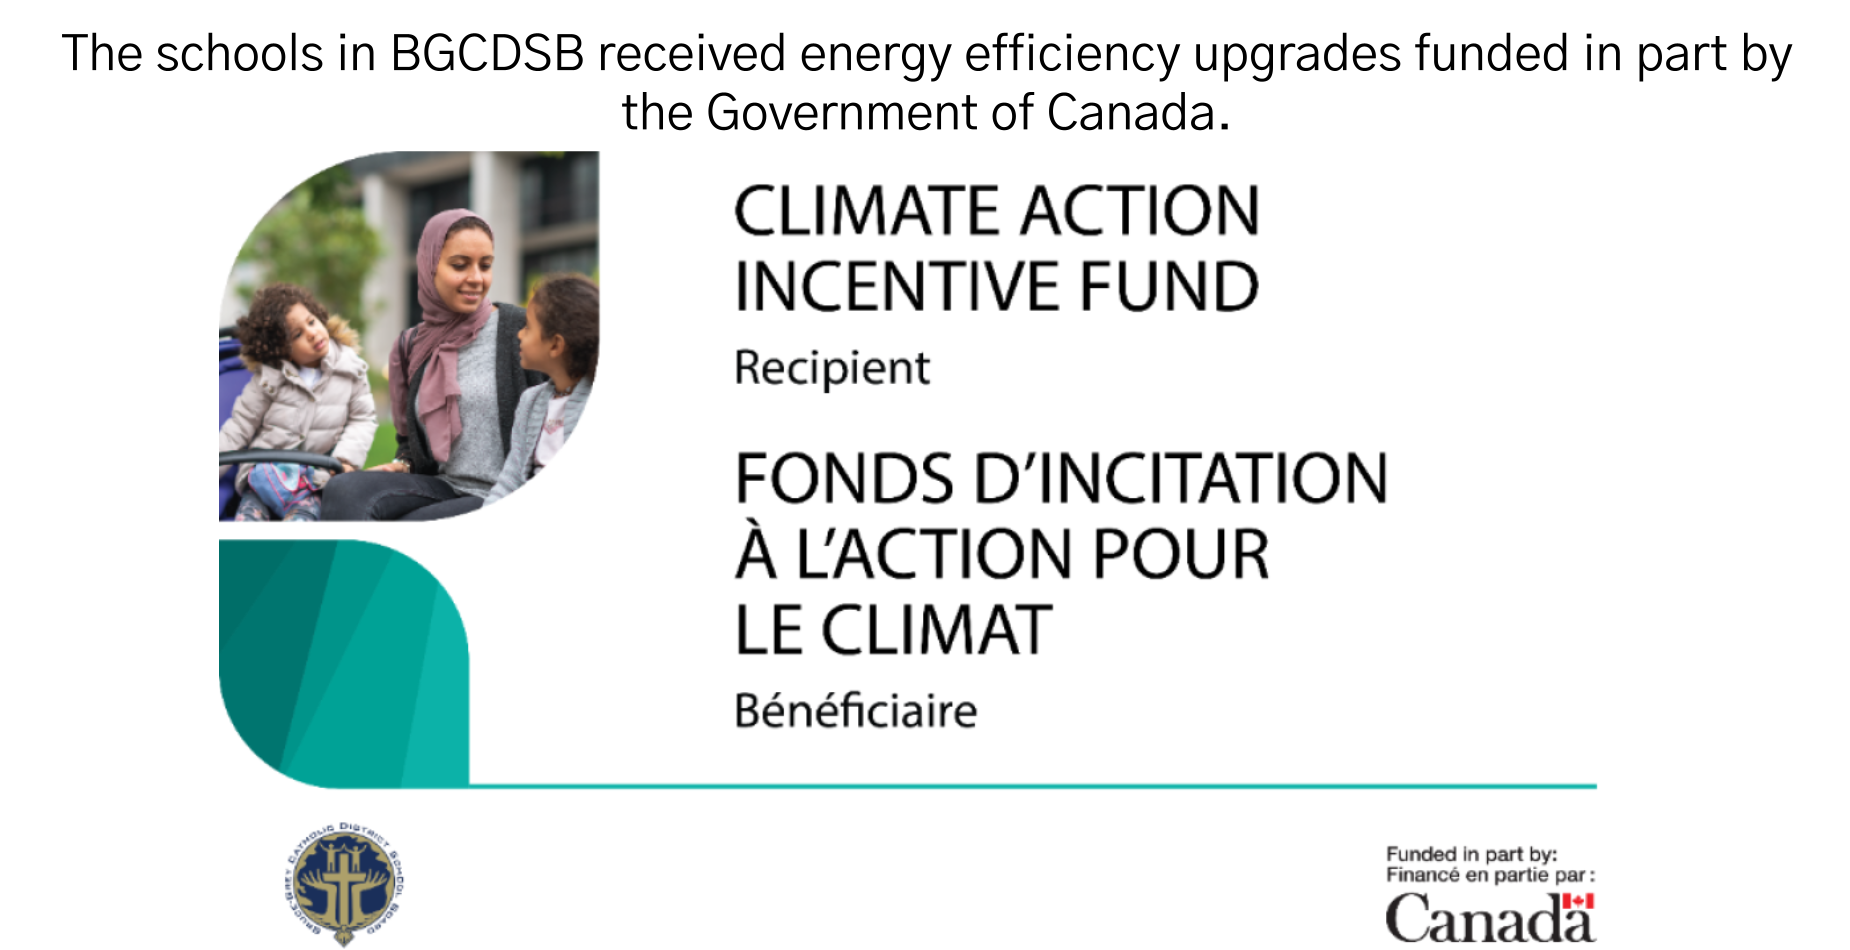 The schools in BGCDSB received energy efficiency upgrades funded in part by the Government of Canada.